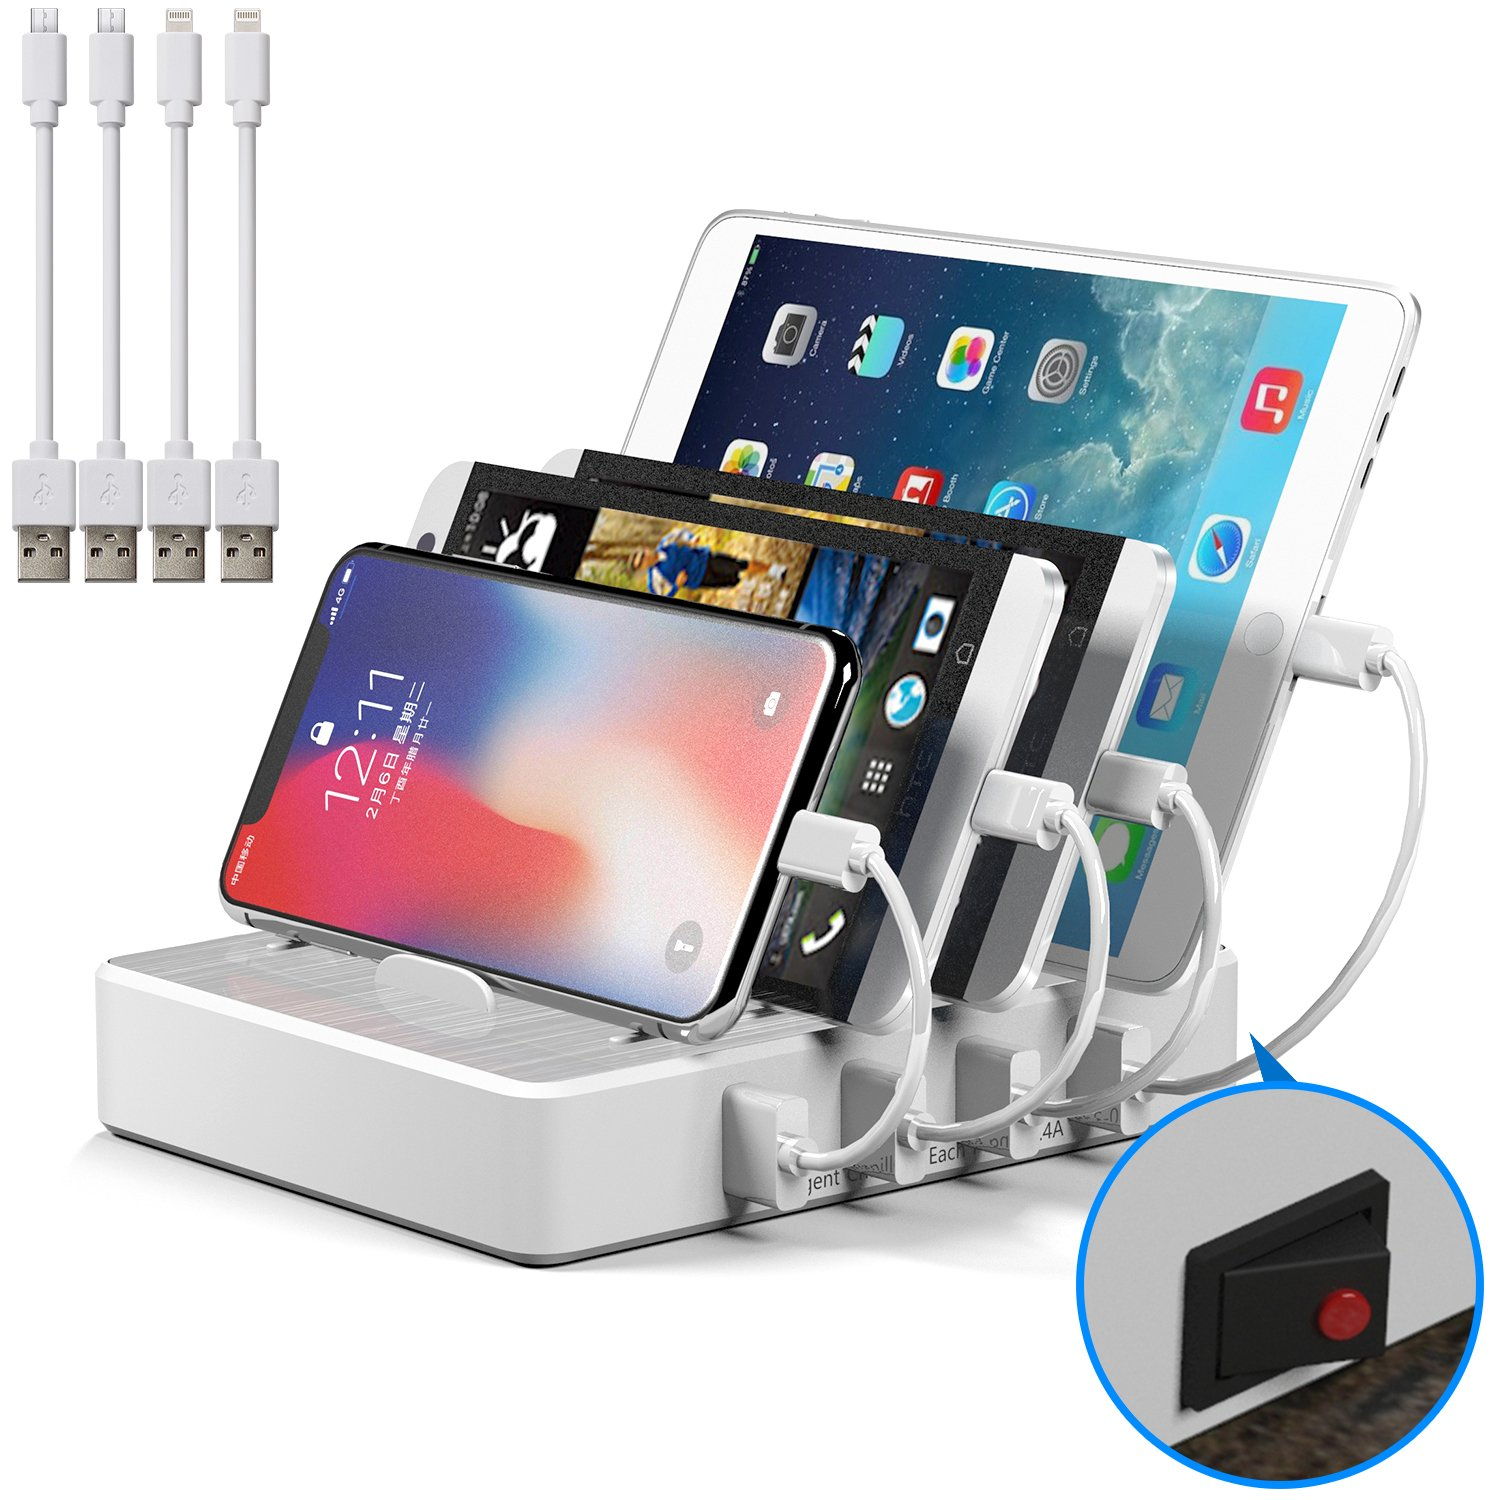 Charging Station, JZBRAIN USB Charging Station Dock 4-Port Charging Stand Organizer Multiple Charger Station & Desktop Docking Station Cell Phones Tablets Samsung Galaxy (Include 4 Cables, White)